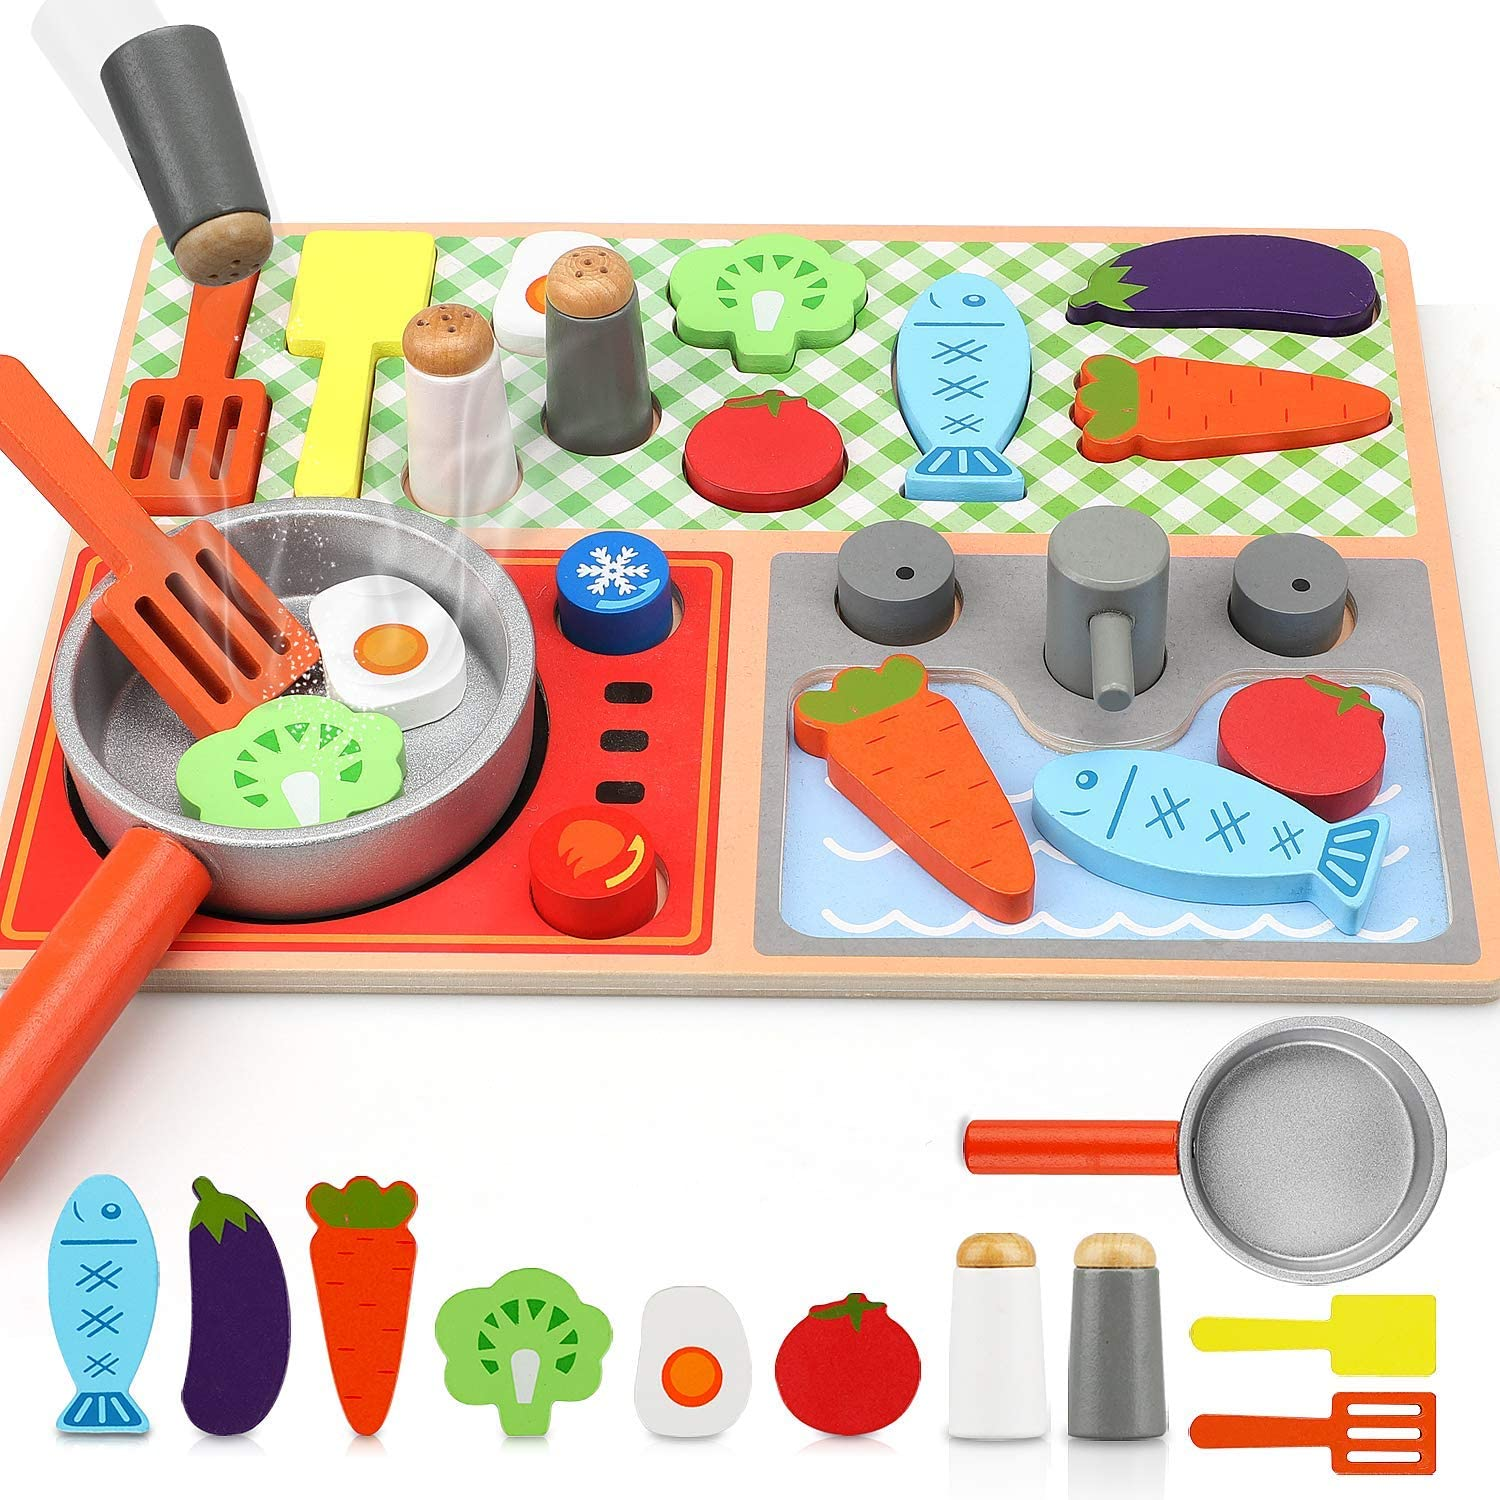 TOY Life Toy Wooden Kitchen Sets for Kids - Wooden Puzzles for Toddlers - Wooden Play Kitchen Accessories - Wooden Play Food Toys for Kids - Play Cooking Set - Toy Stove Toys for Kids 3 4 5 6 7